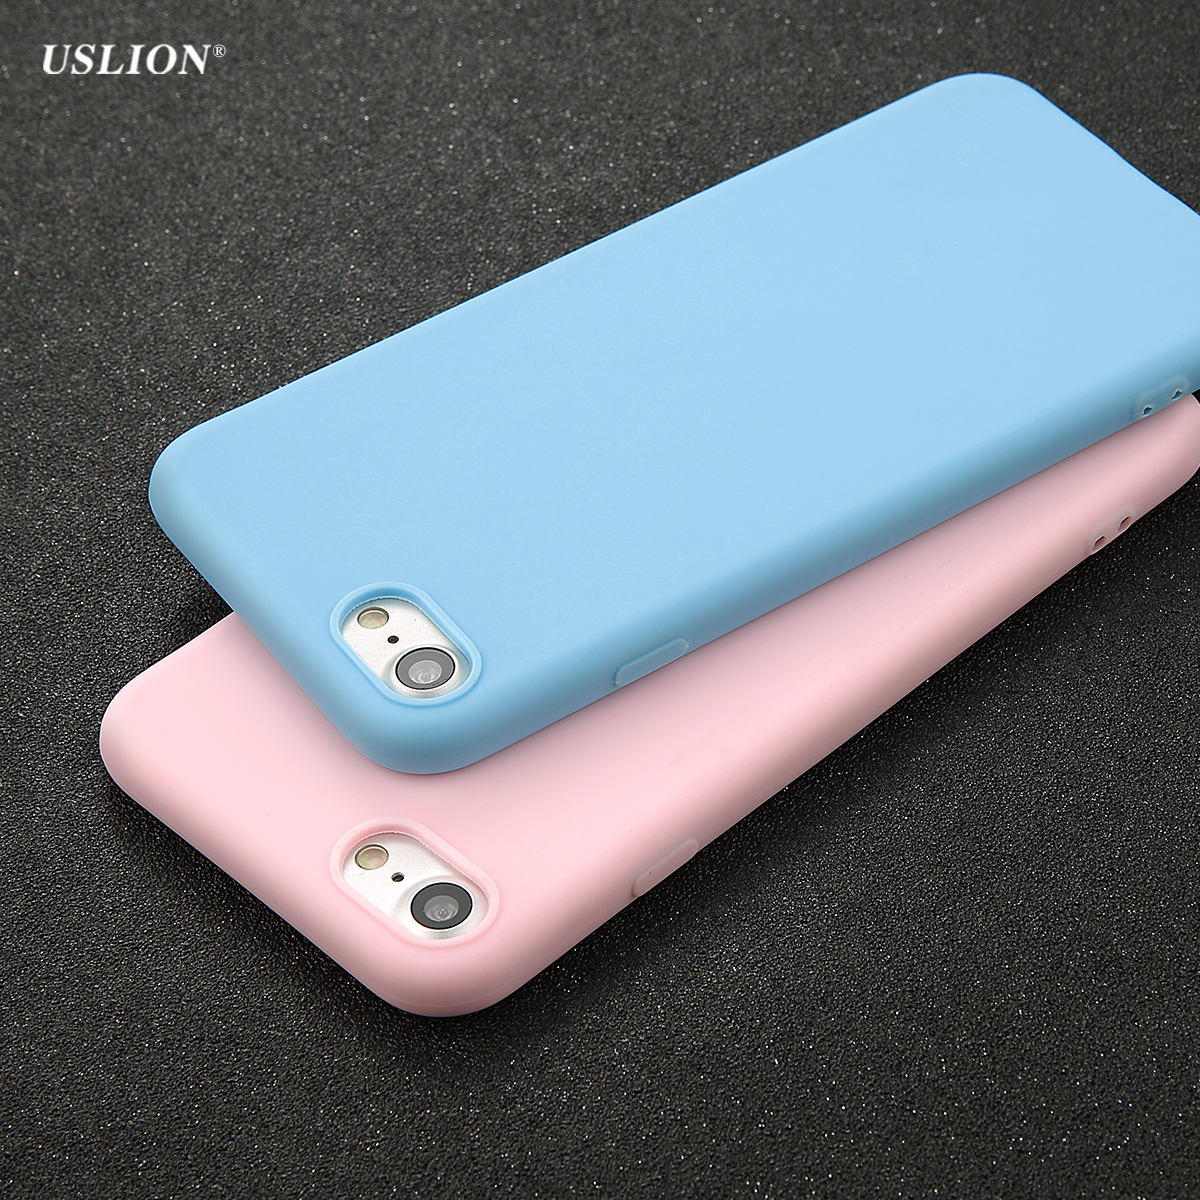 USLION Phone Case For iPhone 7 6 6s 8 X Plus 5 5s SE XR XS Simple Solid Color Ultrathin Soft TPU Cases Candy Color Back Cover for iphone 6s case for iphone 6 macaron phone bag cases silicone case for iphone 5 5s se 6 6s 7 8 plus case cover for iphone 6